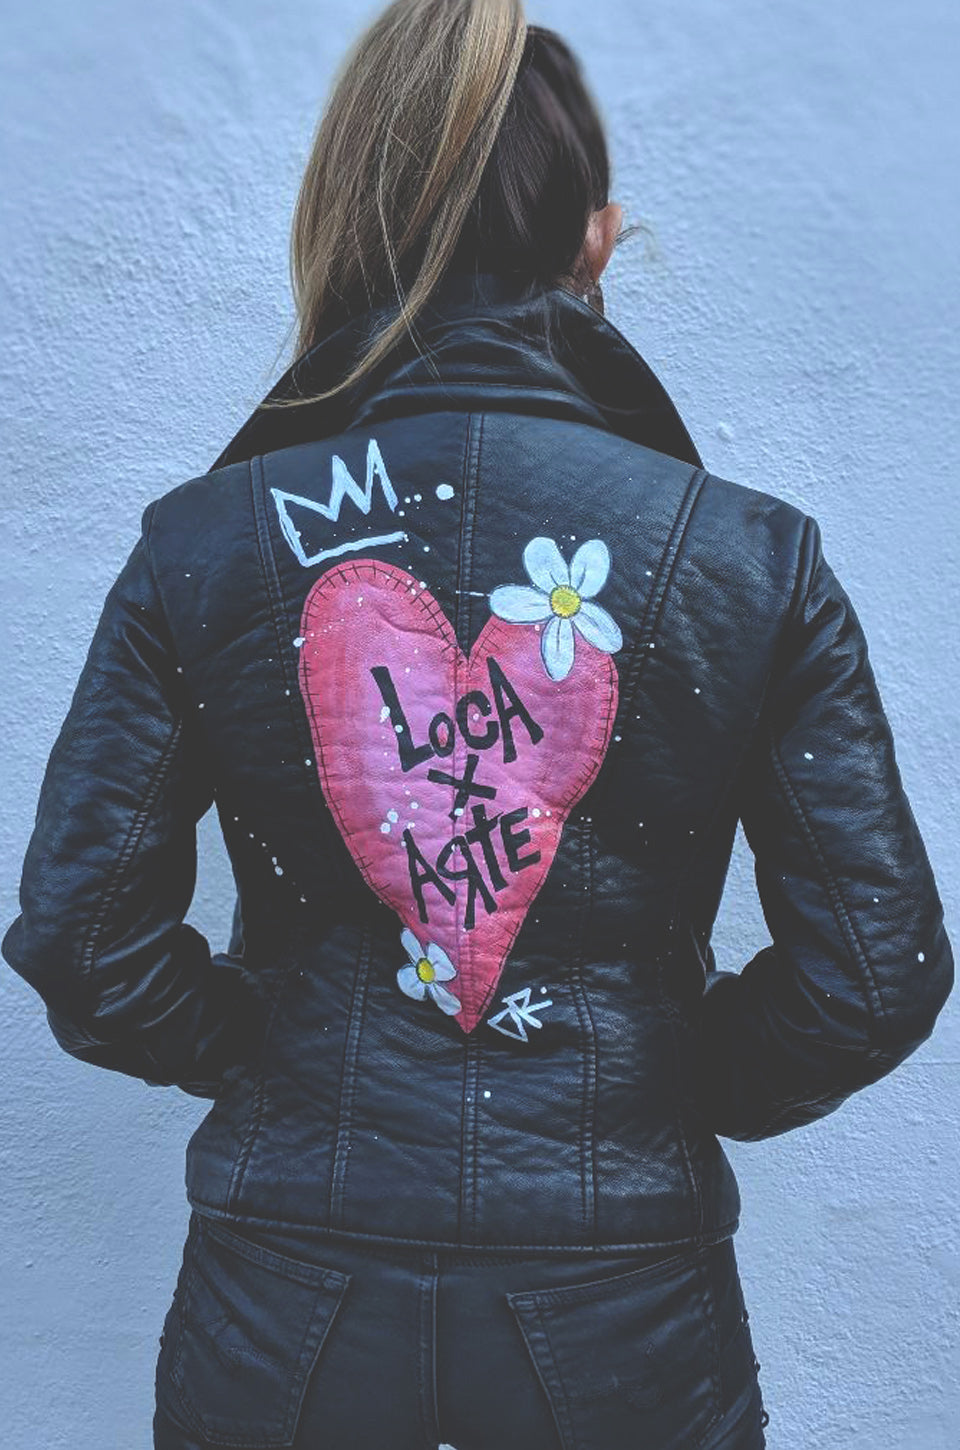 Loca X Arte Vegan Leather Jacket